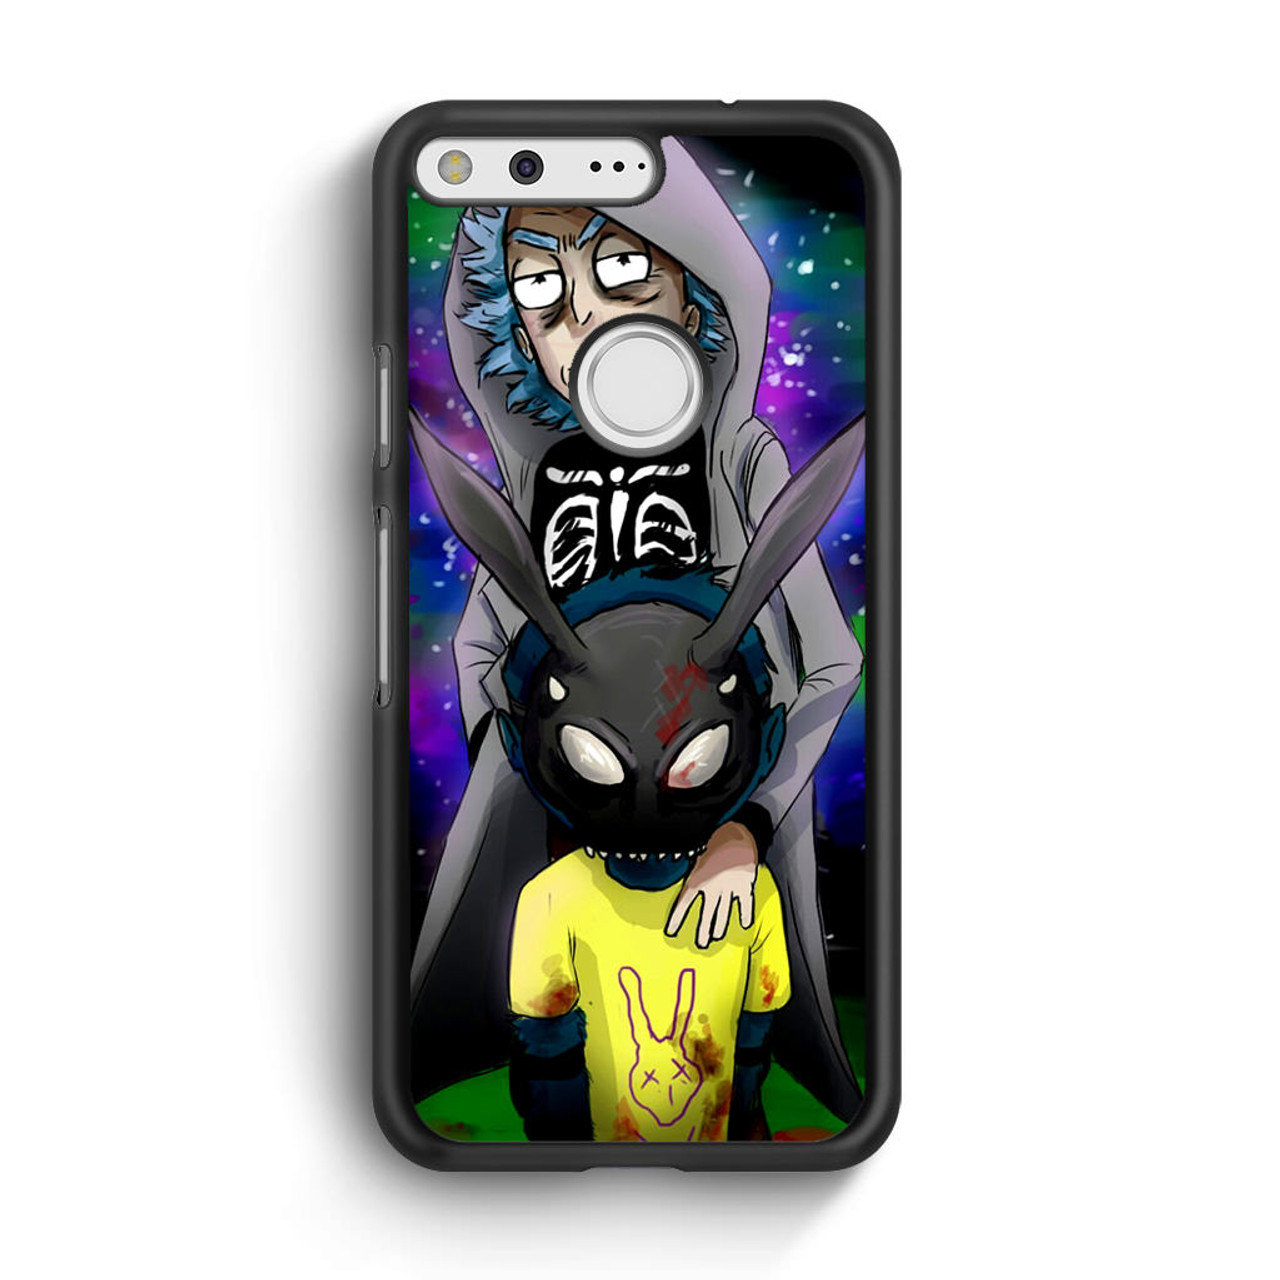 finest selection 1275f 1b73d Rick And Morty Donnie Darko Google Pixel Case